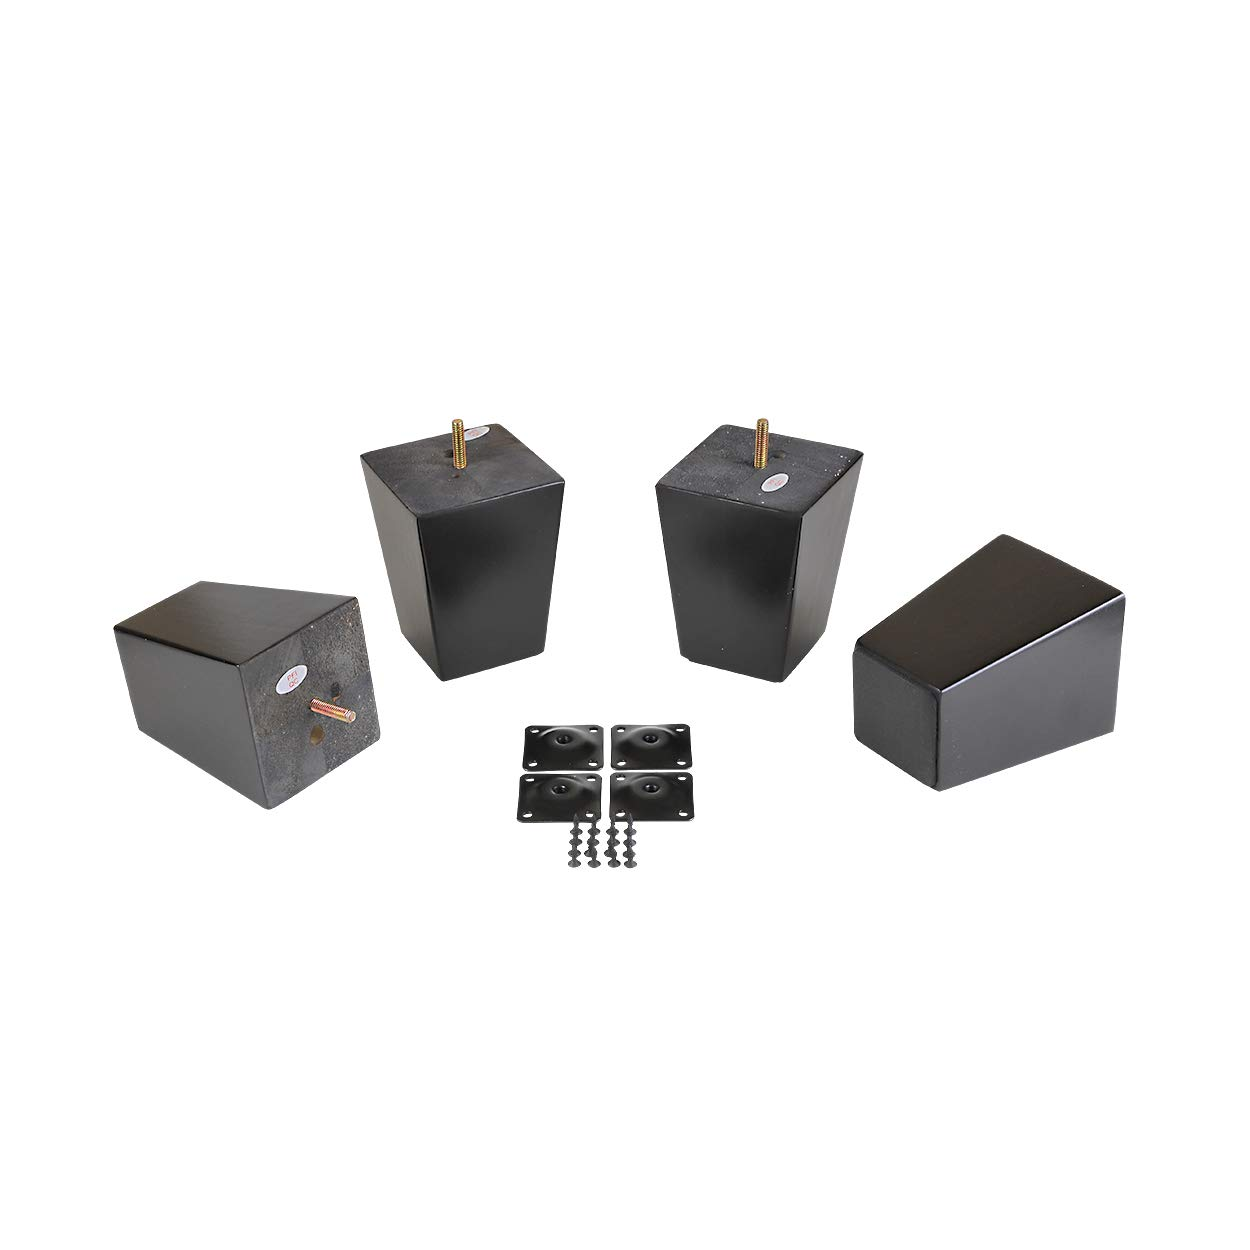 "ProFurnitureParts 5"" Inch Espresso Finish Square Tapered Wood W/ Anti Skid Pads and Leg Plates Set of 4"